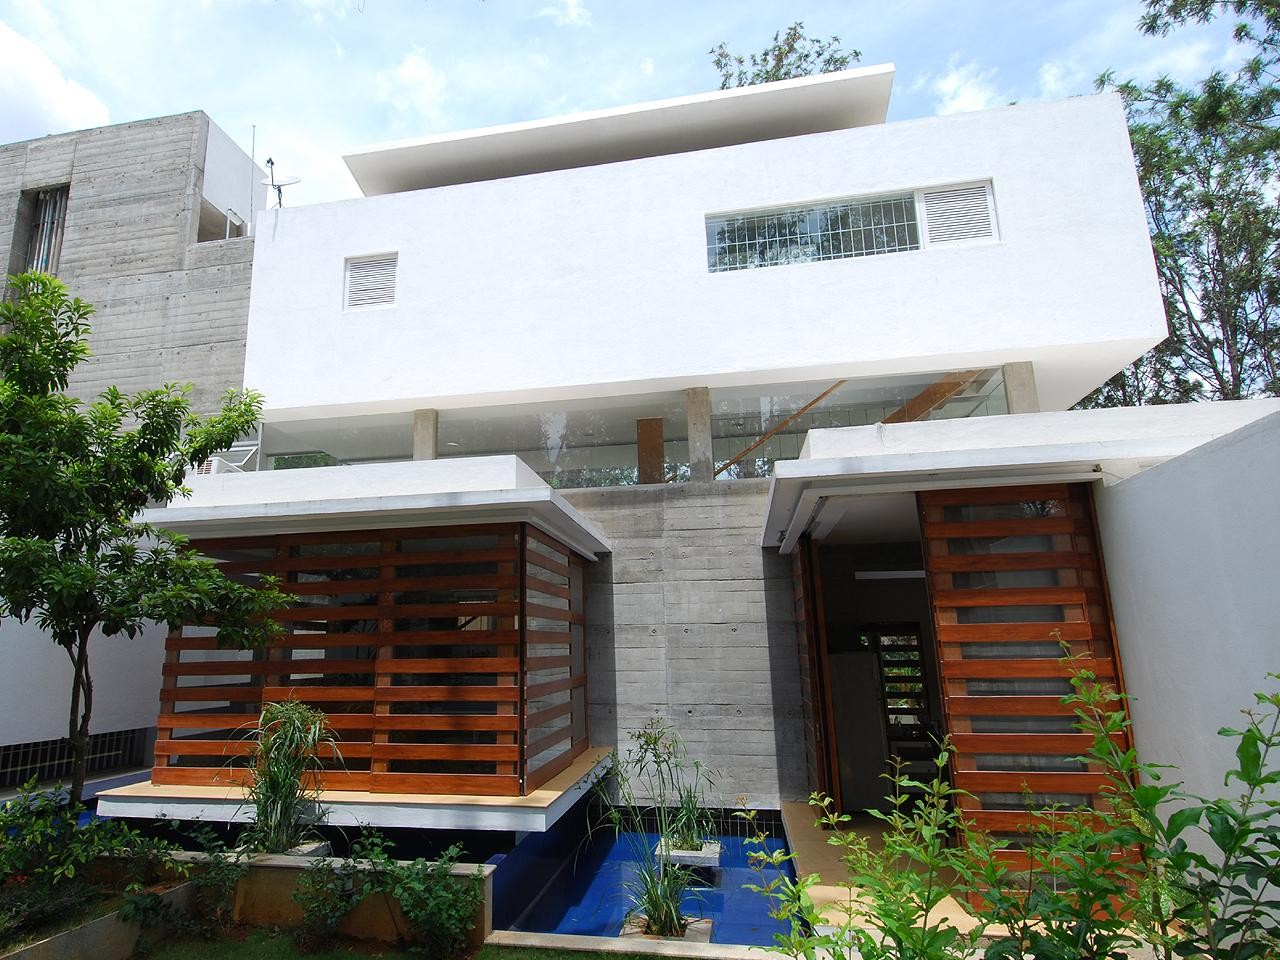 Gallery of house of pavilions architecture paradigm 15 for Architecture design for small house in india